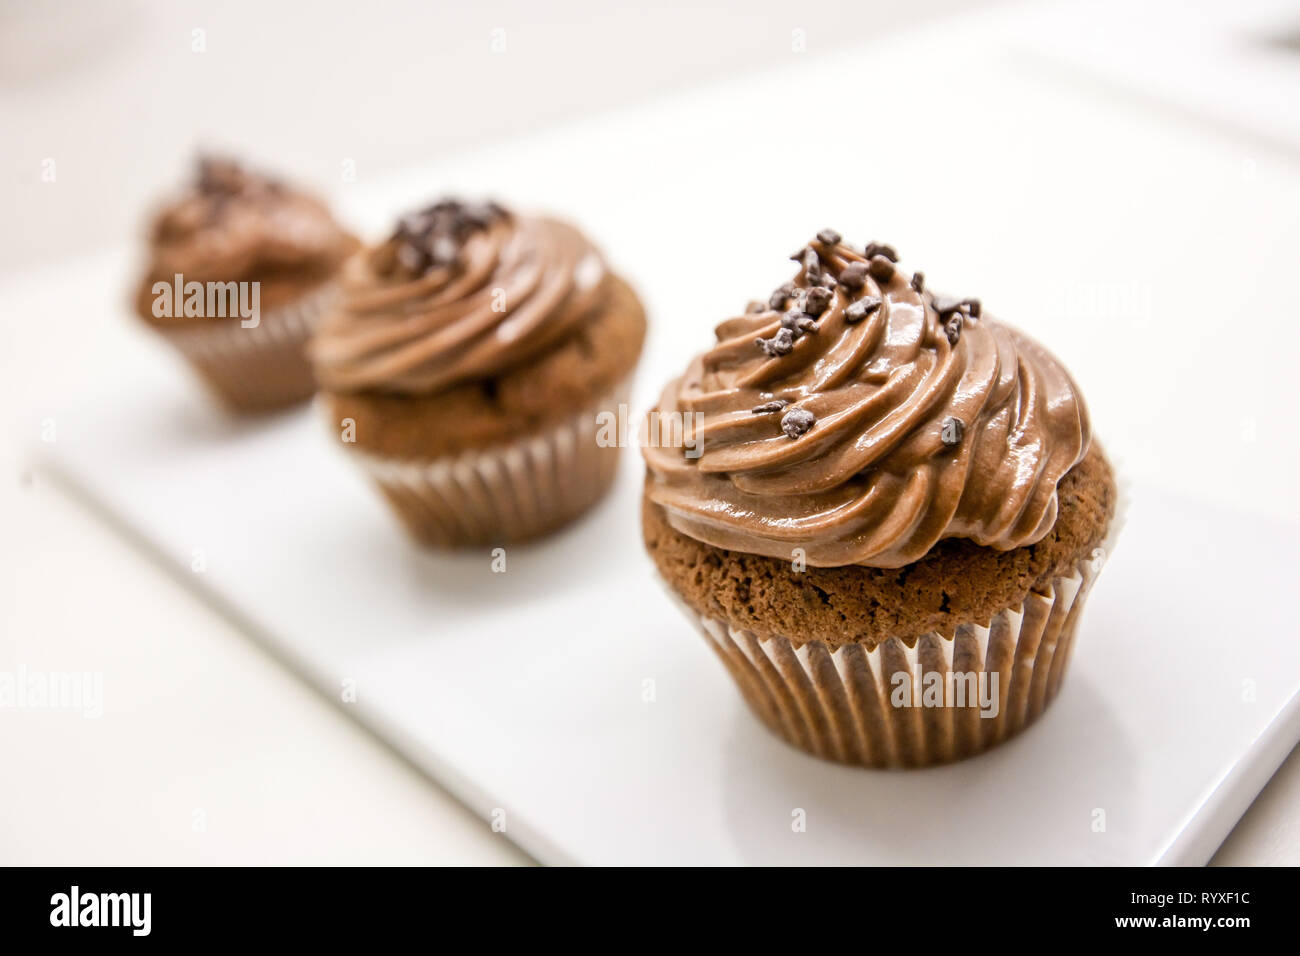 Home made chocolate cupcakes on white plate and table Stock Photo